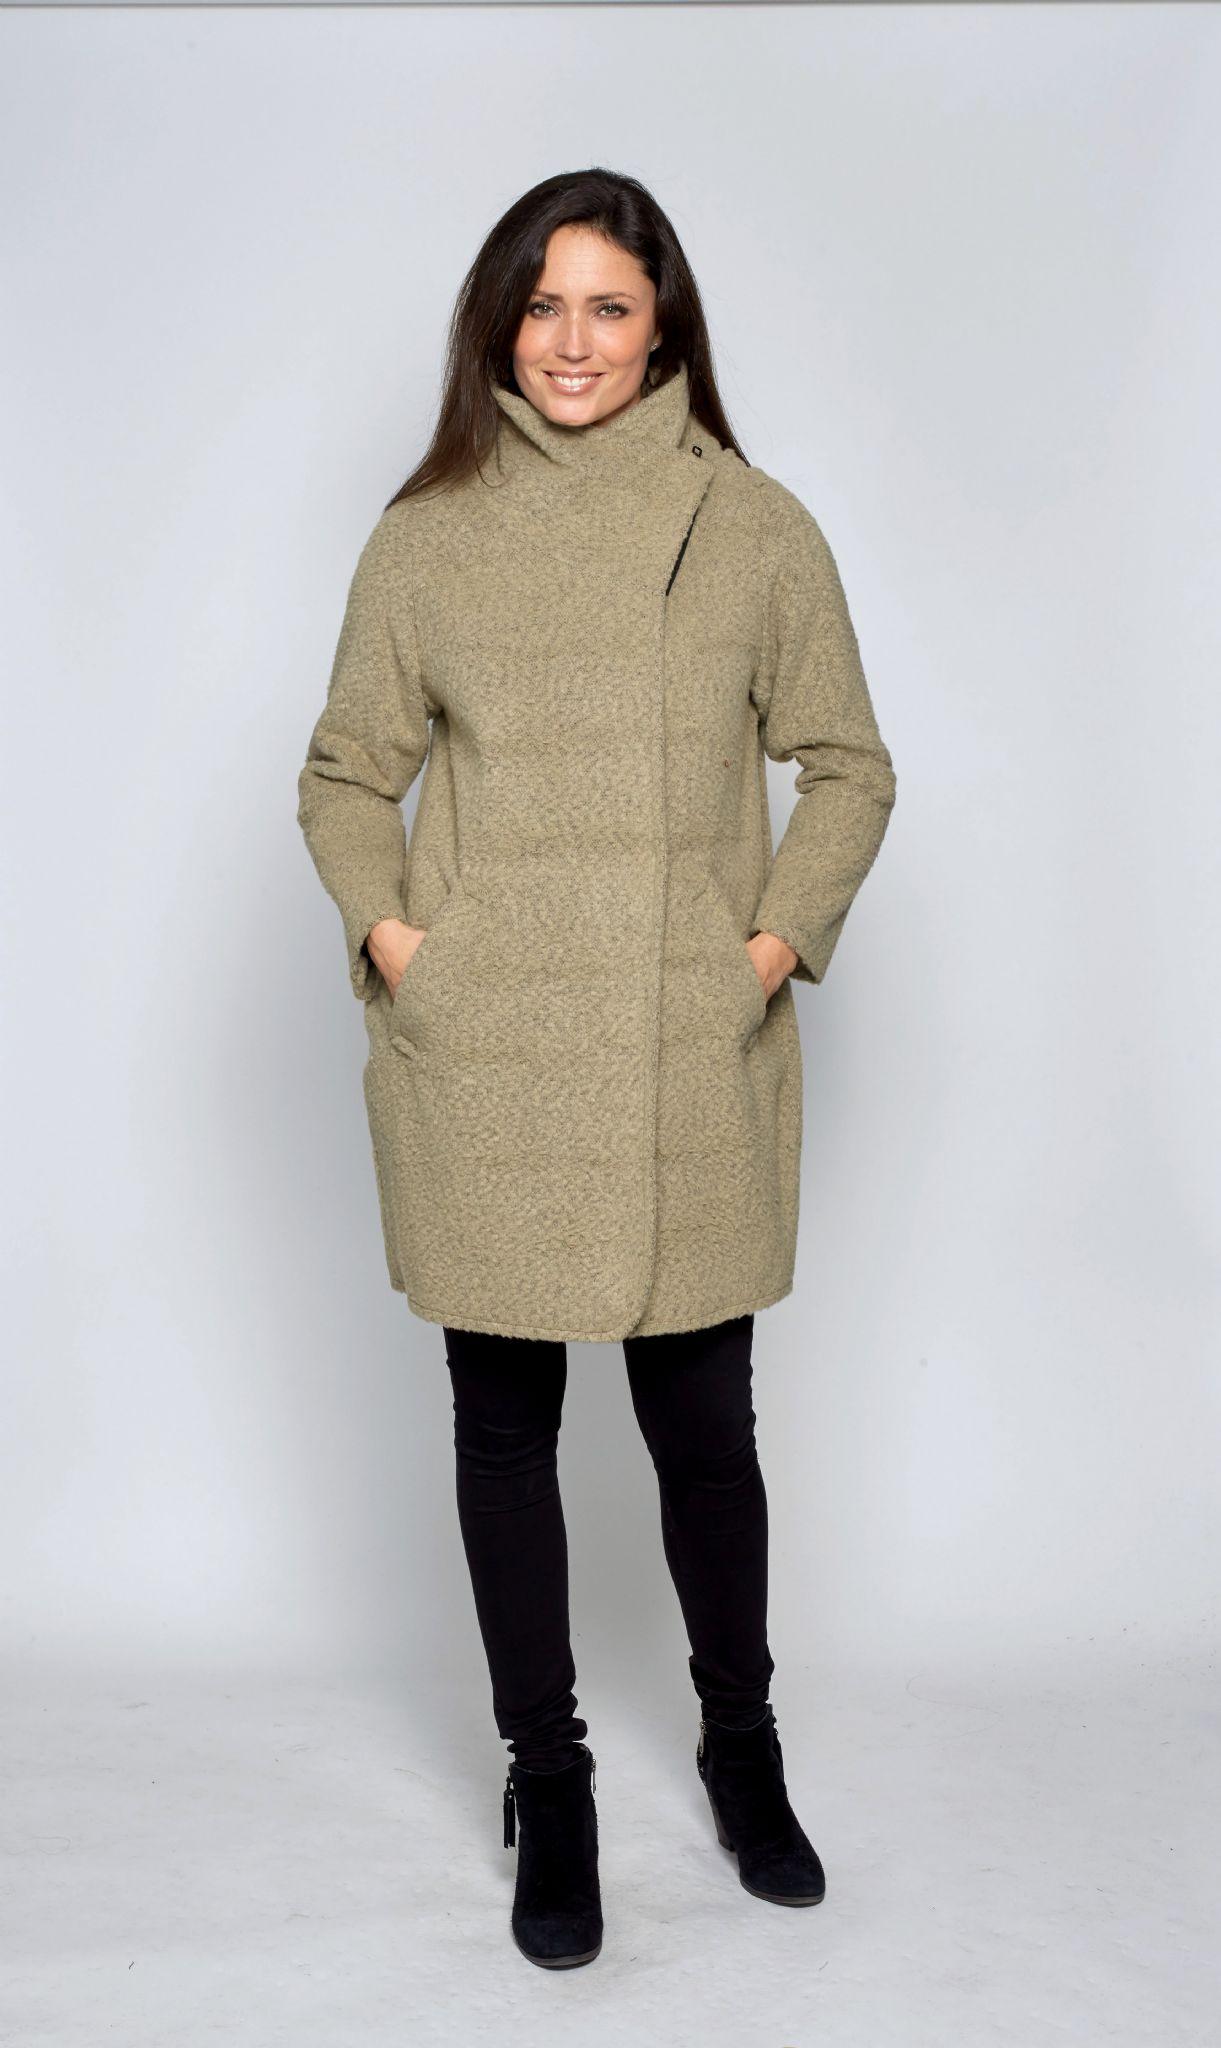 Cocoon coat with oversized notched lapels and slanted front pockets. kensie Women's Wool-Blend Cocoon Coat. by kensie. $ Marc New York by Andrew Marc Women's Plus-Size Wendy Wool-Blend Coat. by Marc New York by Andrew Marc. $ - $ $ $ 99 Prime. FREE Shipping on eligible orders.